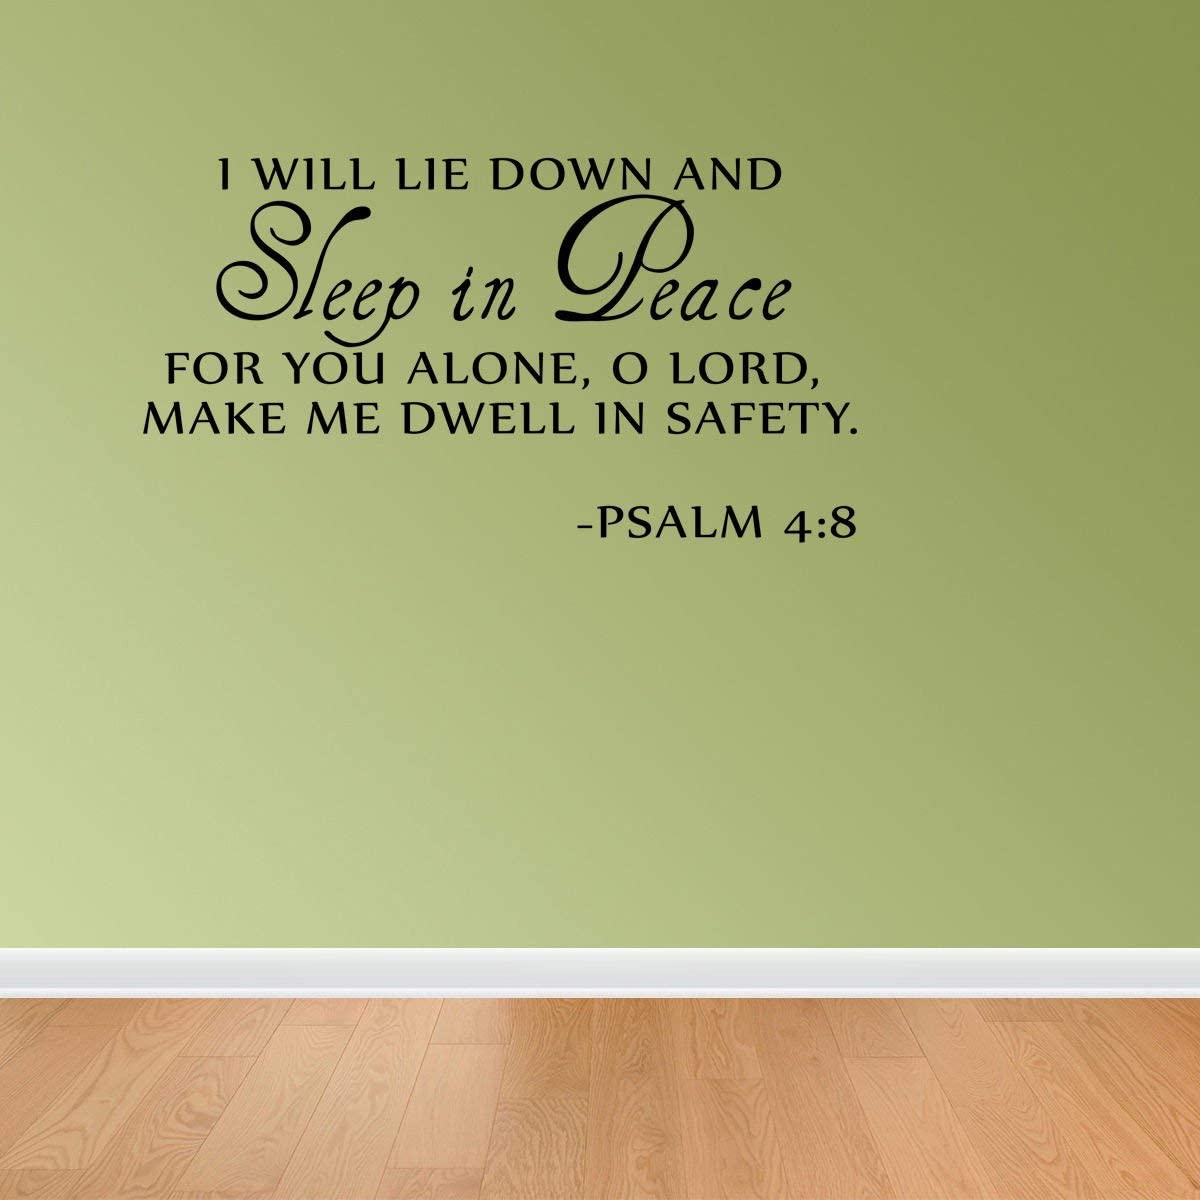 Sleep in Peace Psalm 4:8 Bible Verse Lettering Wall Decal Decor Quote Inspire